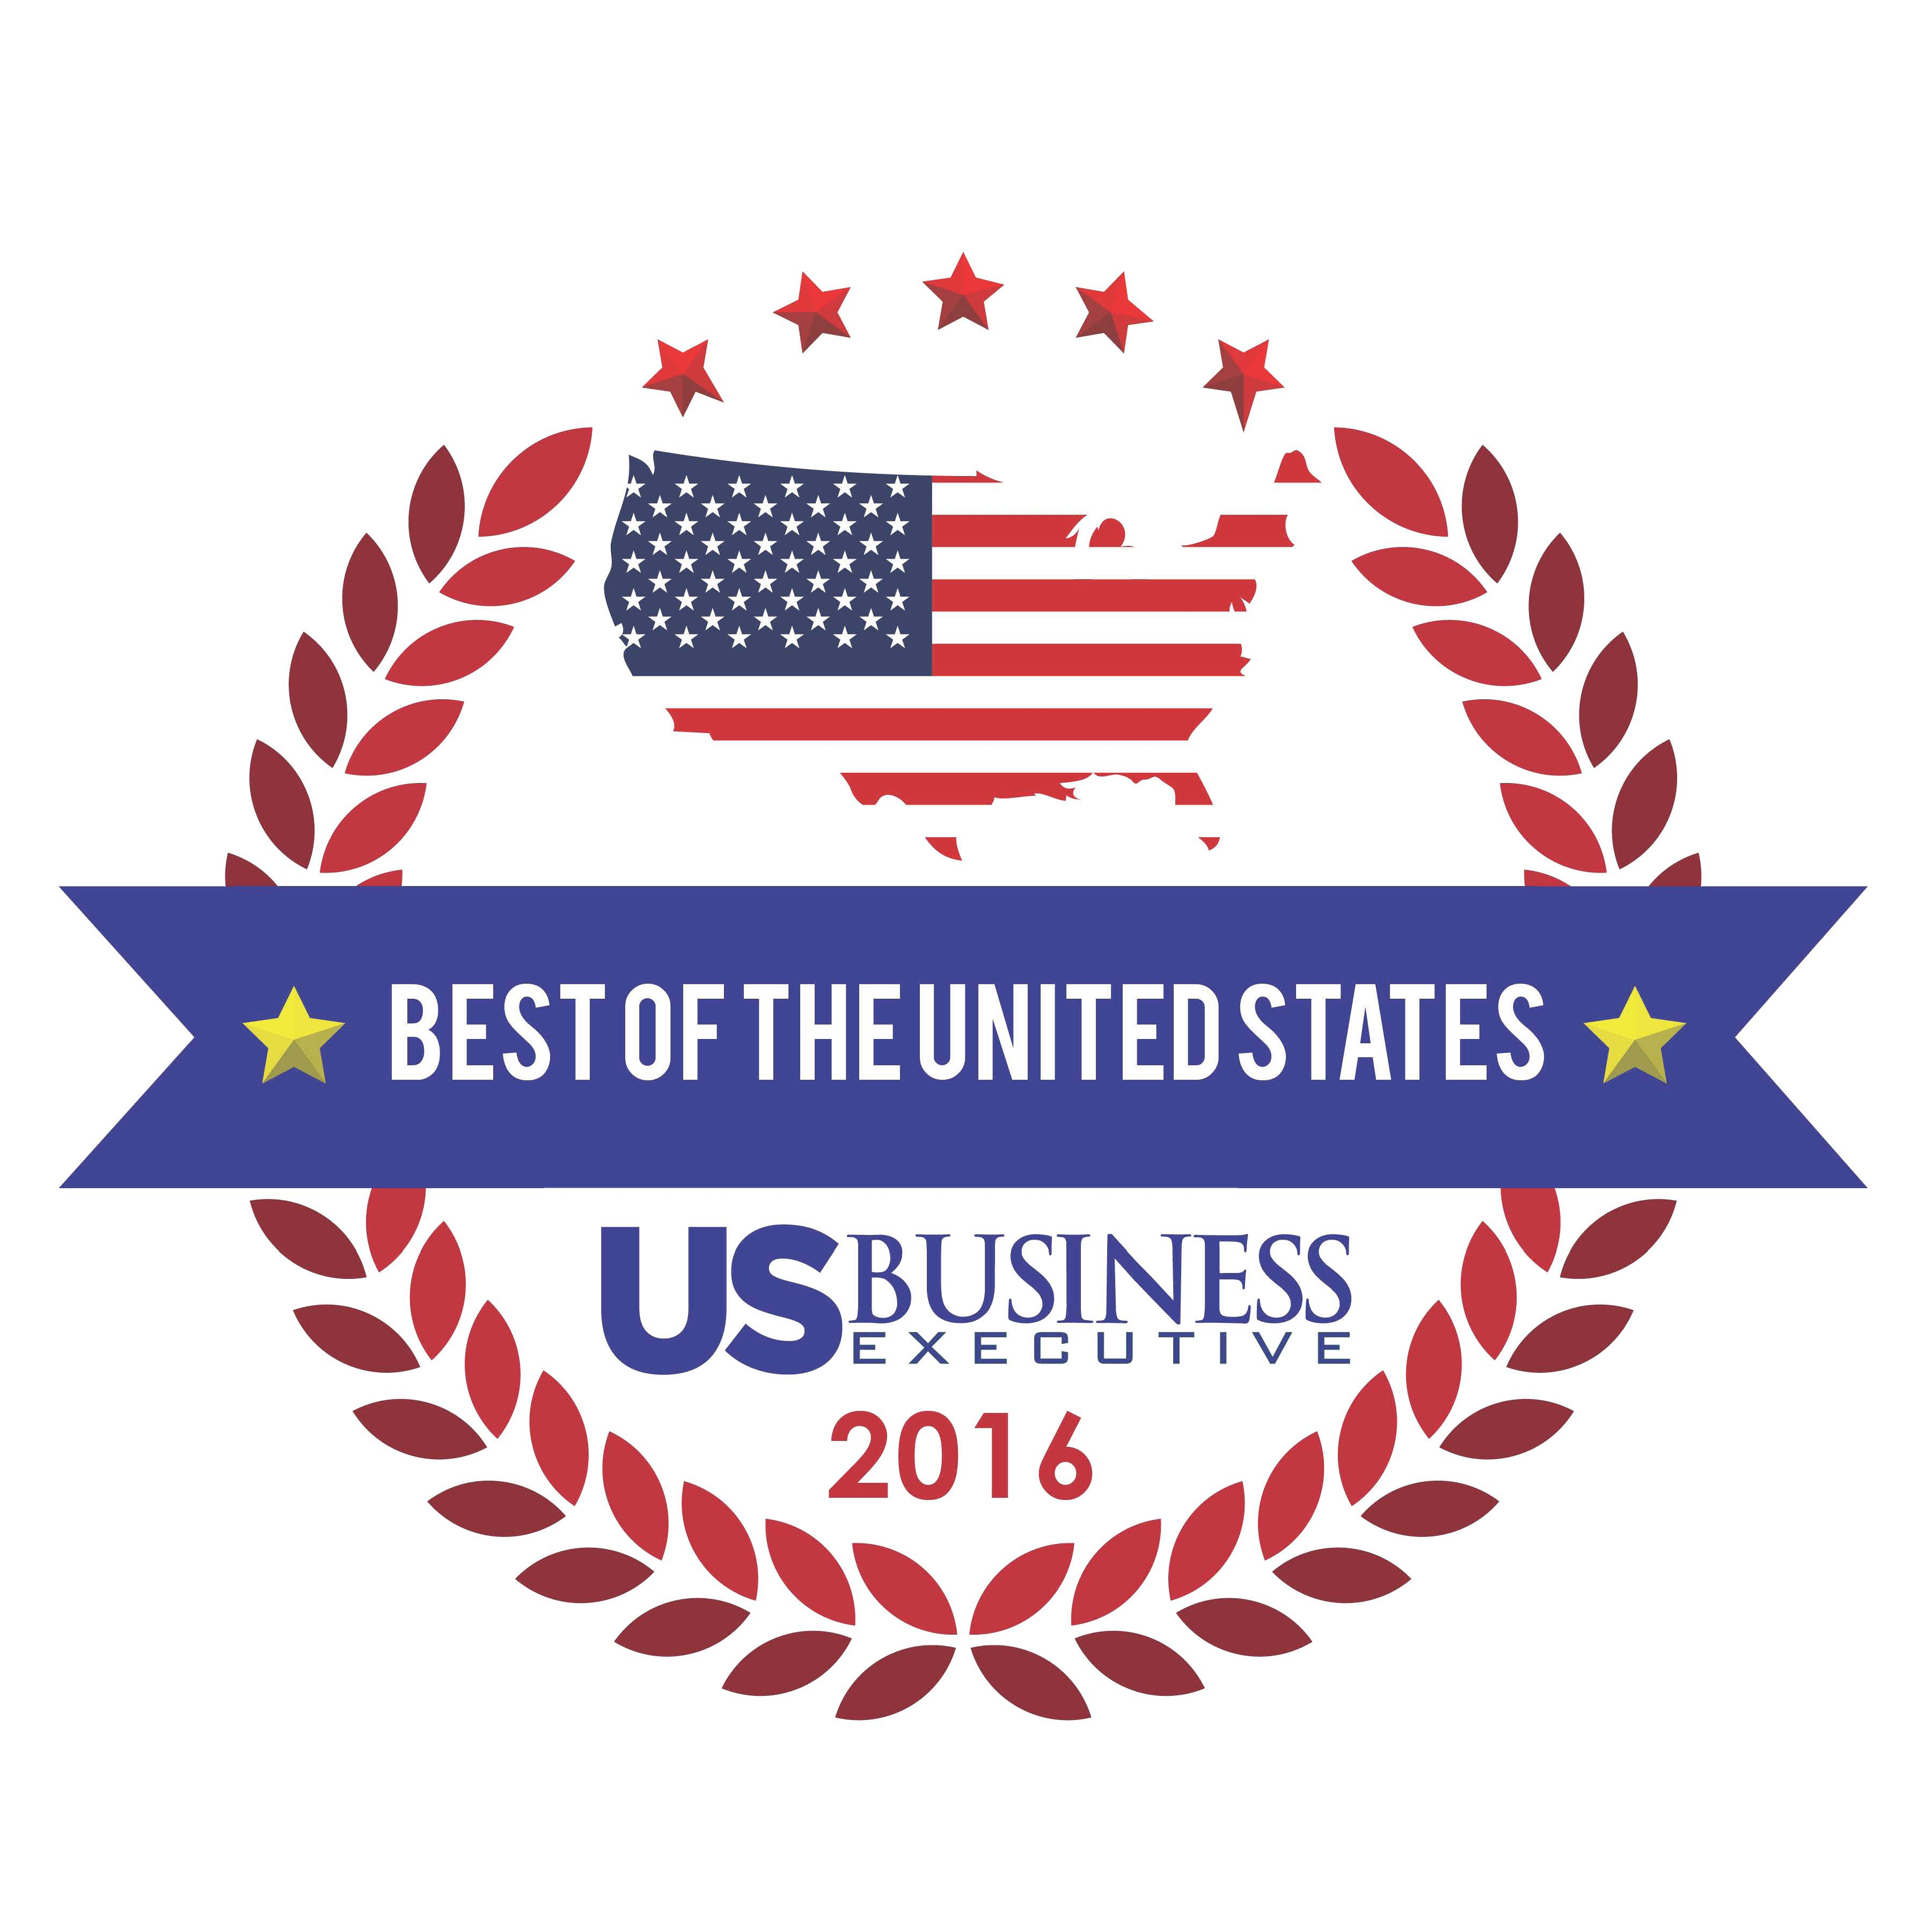 us business executive releases annual best of the united. Black Bedroom Furniture Sets. Home Design Ideas